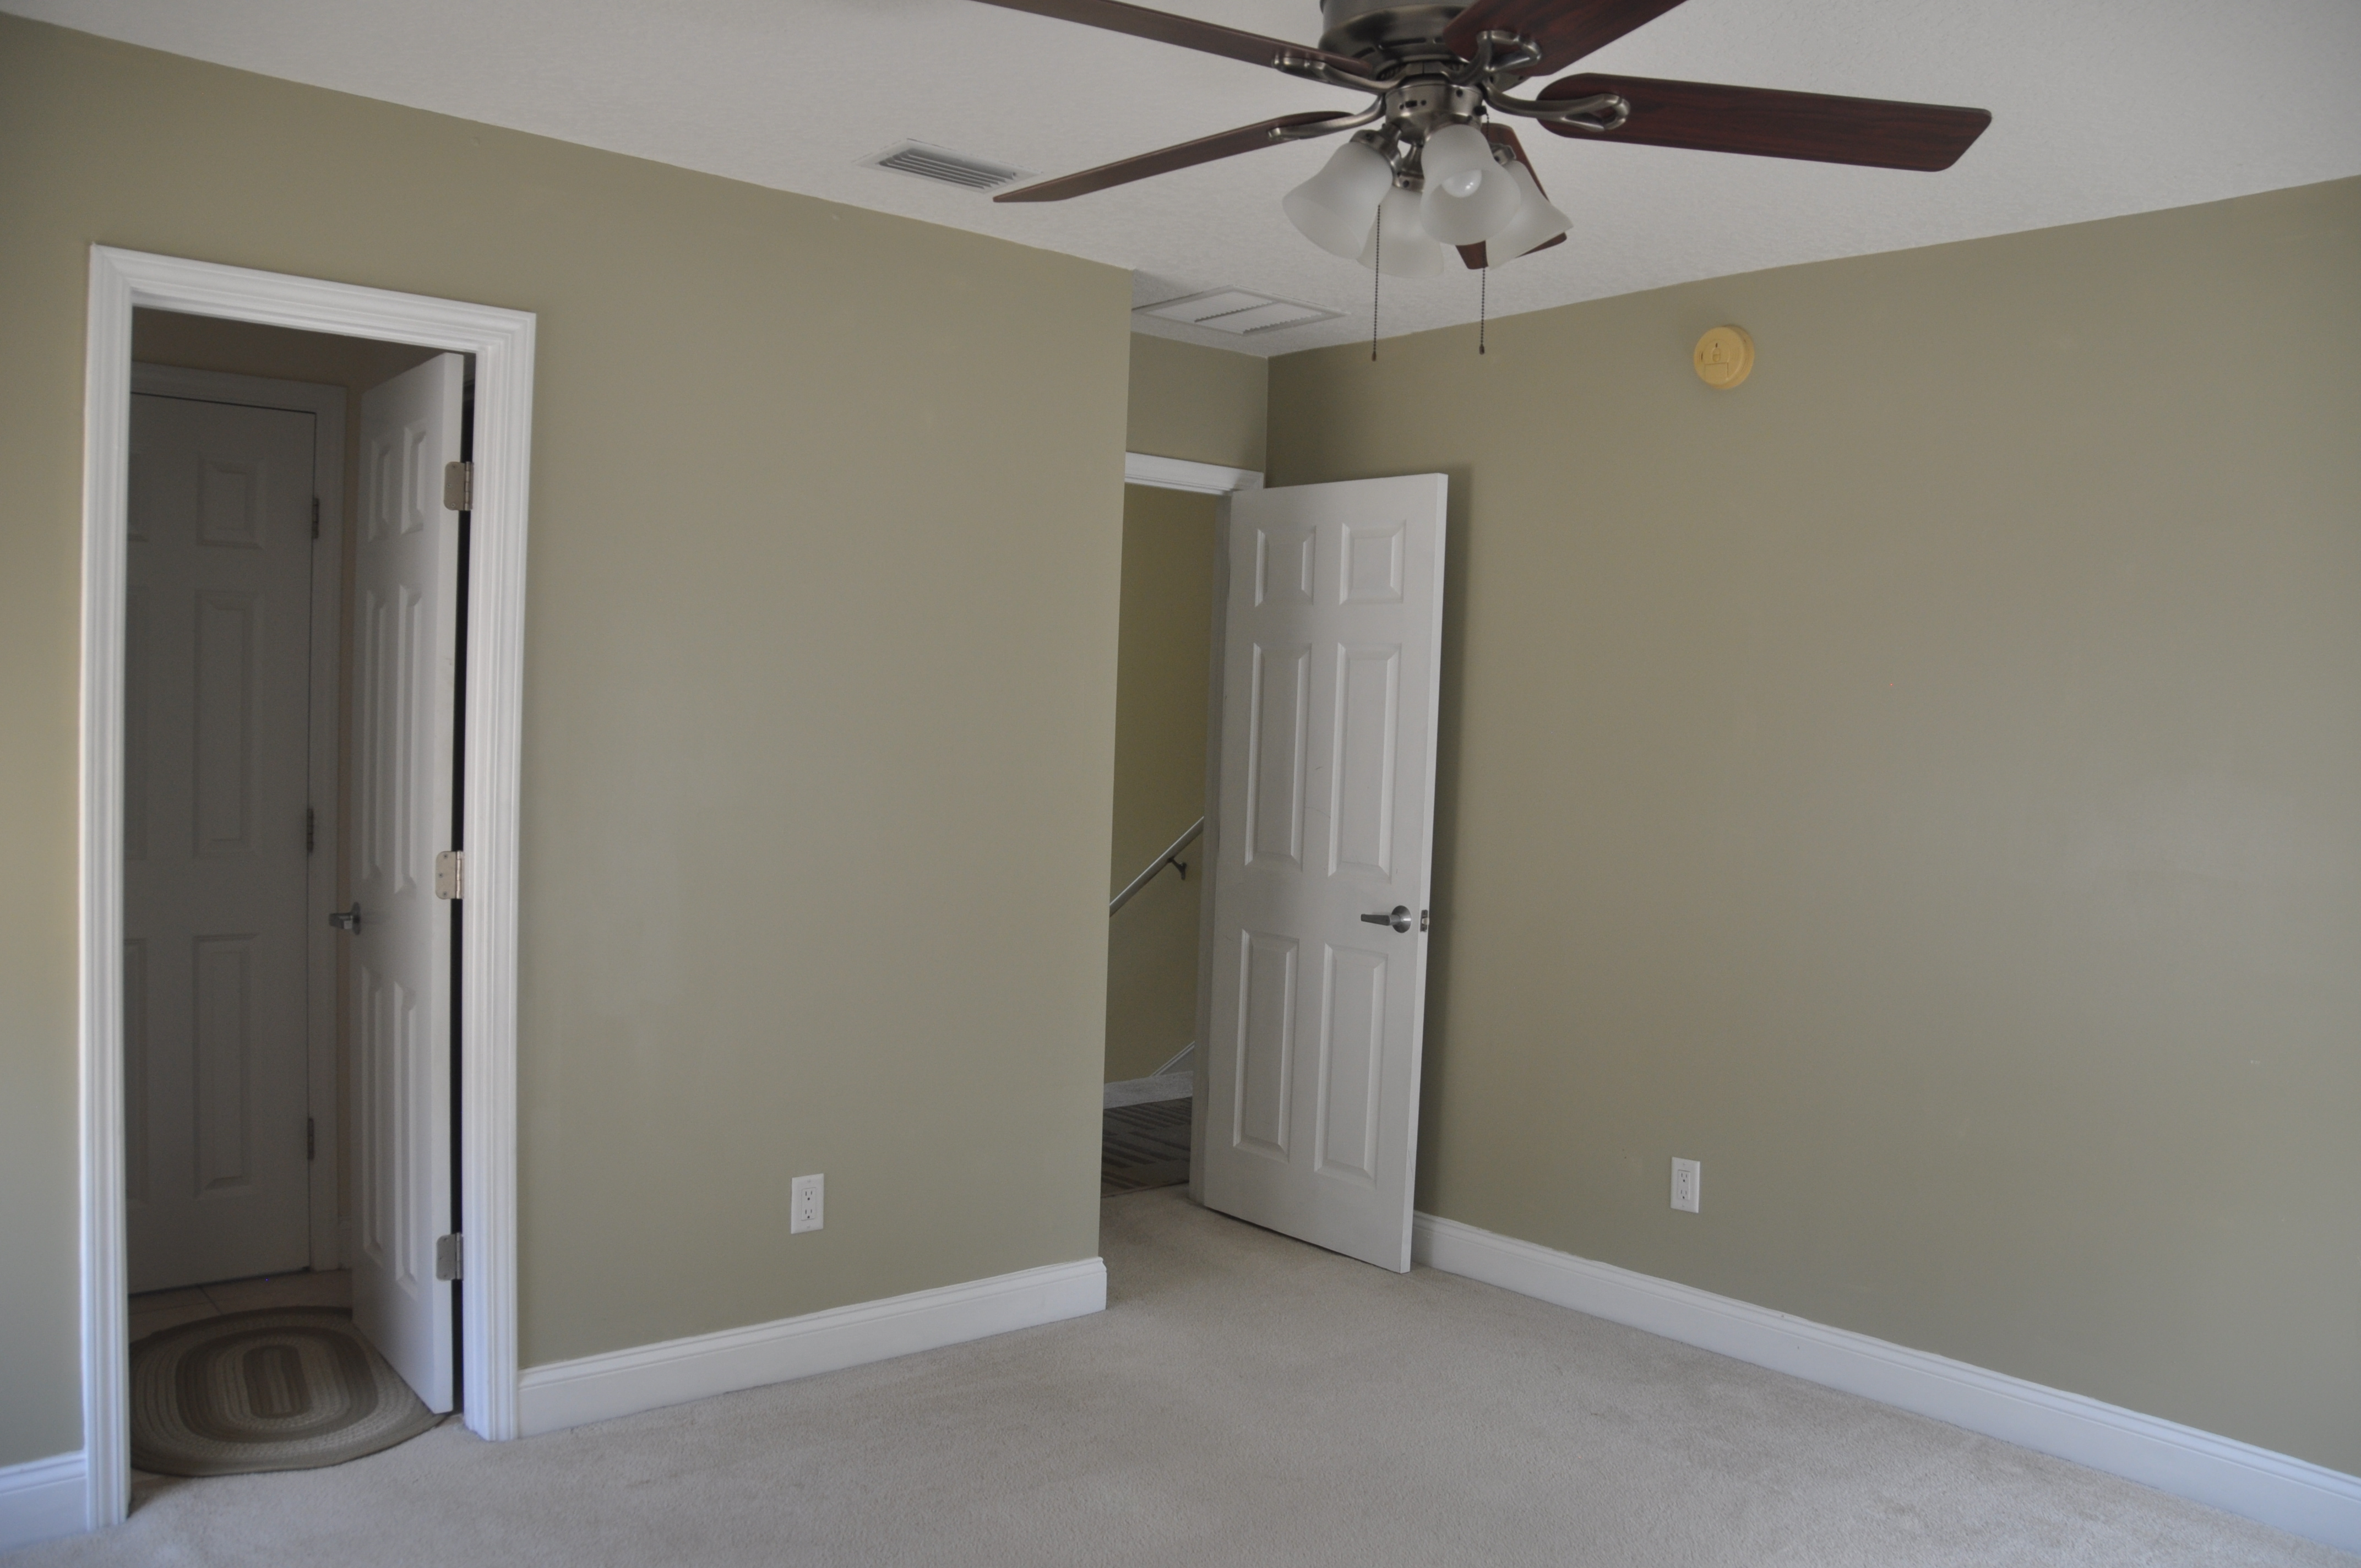 UPSTAIRS ROOM 2